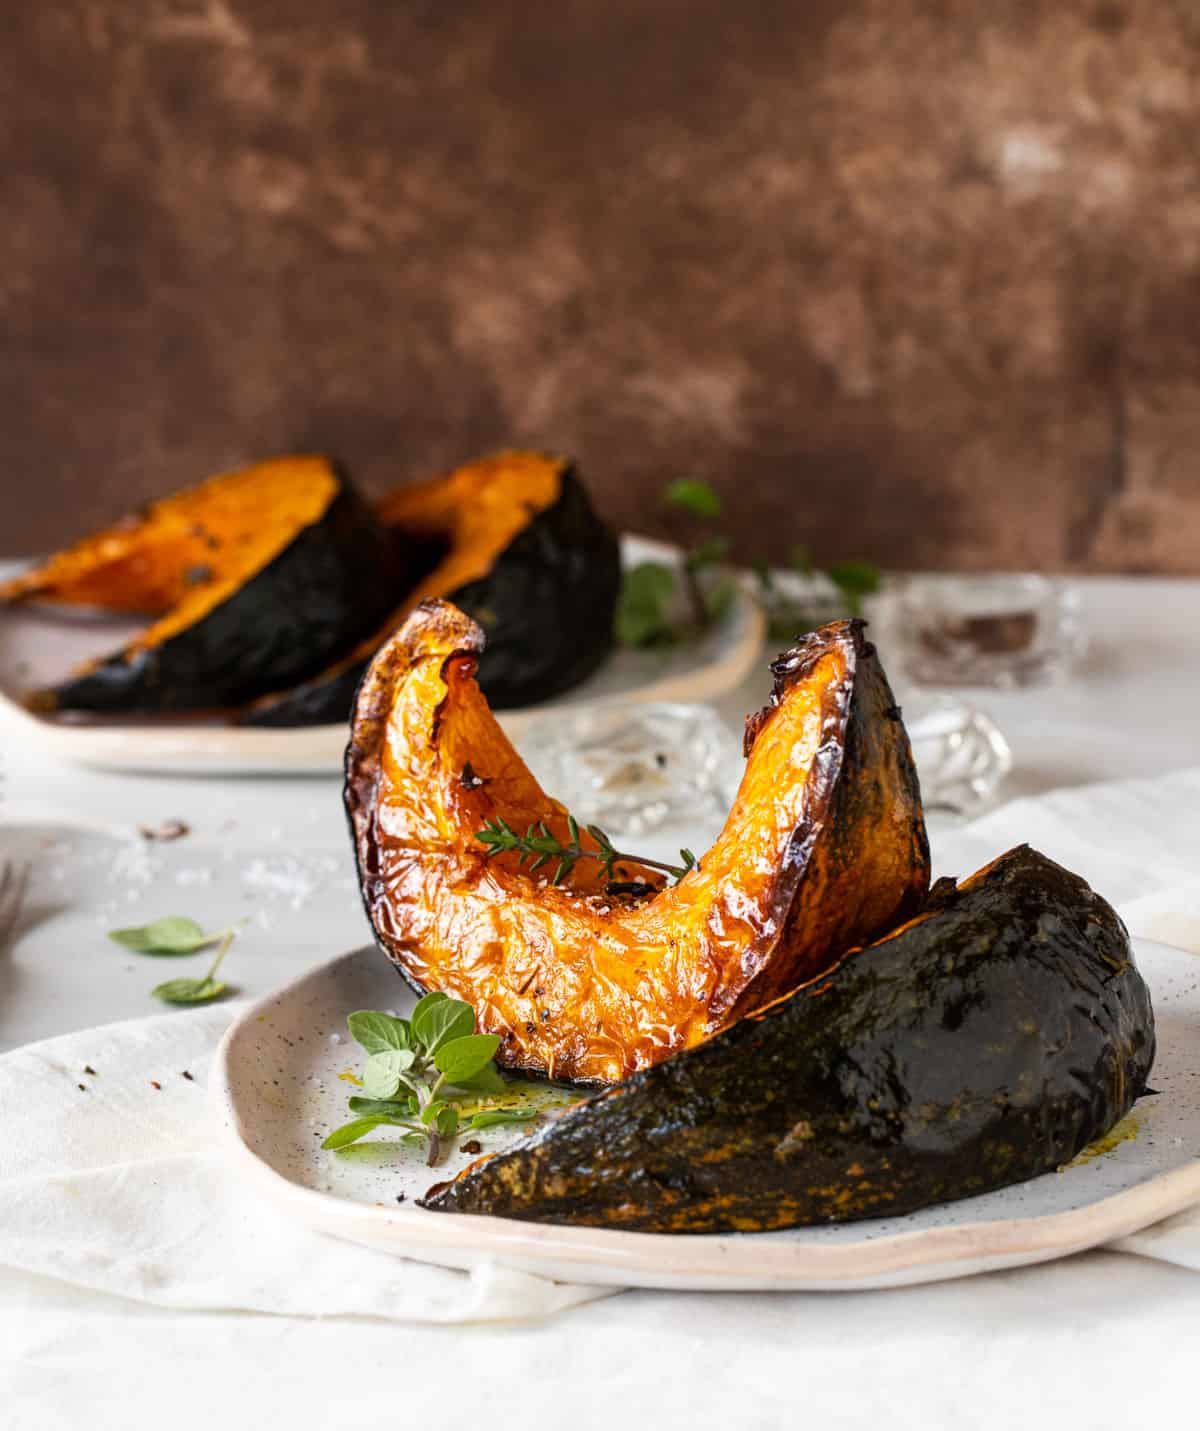 Baked pumpkin wedges with herbs on white plates, white surface, brown background